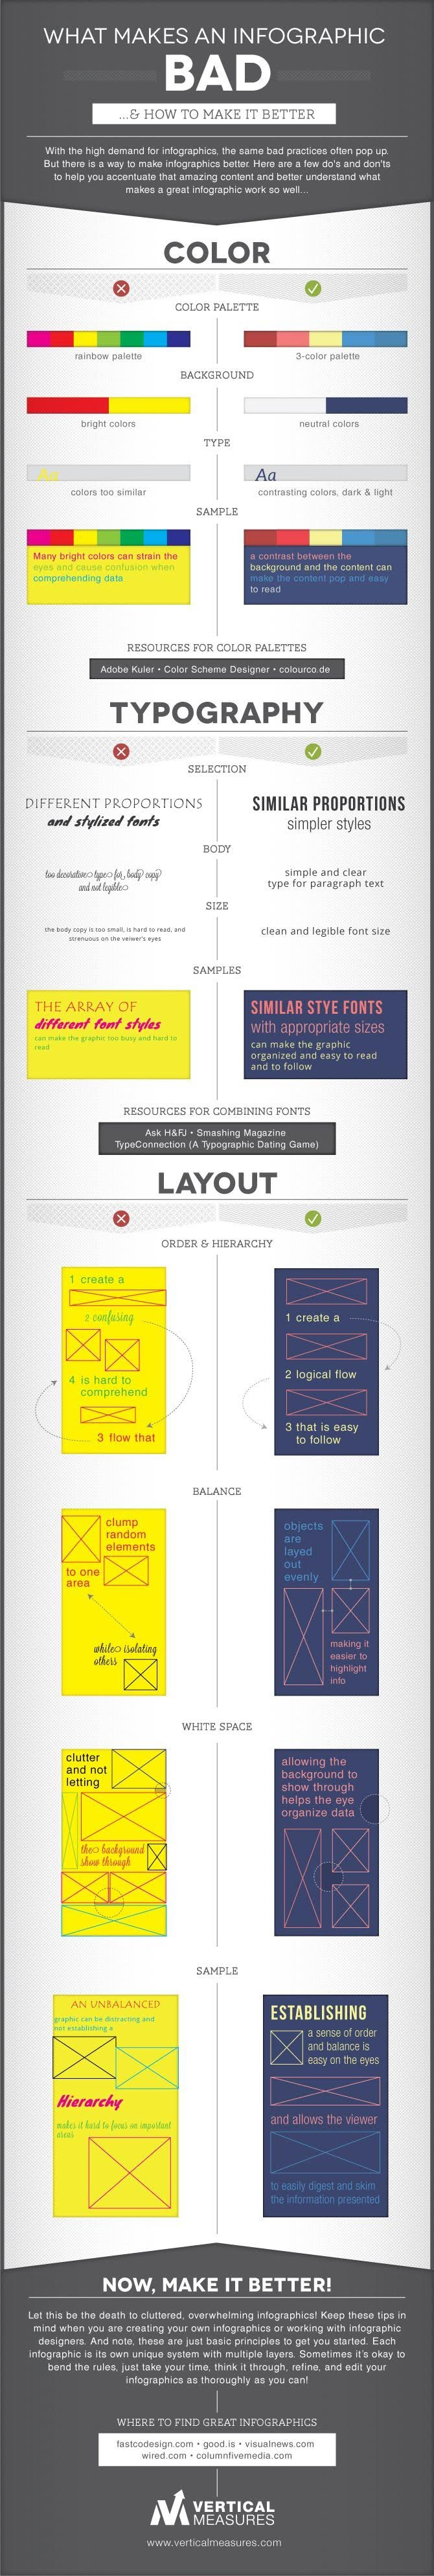 What Makes an Infographic Design Bad & How To Make It Better #Infographic